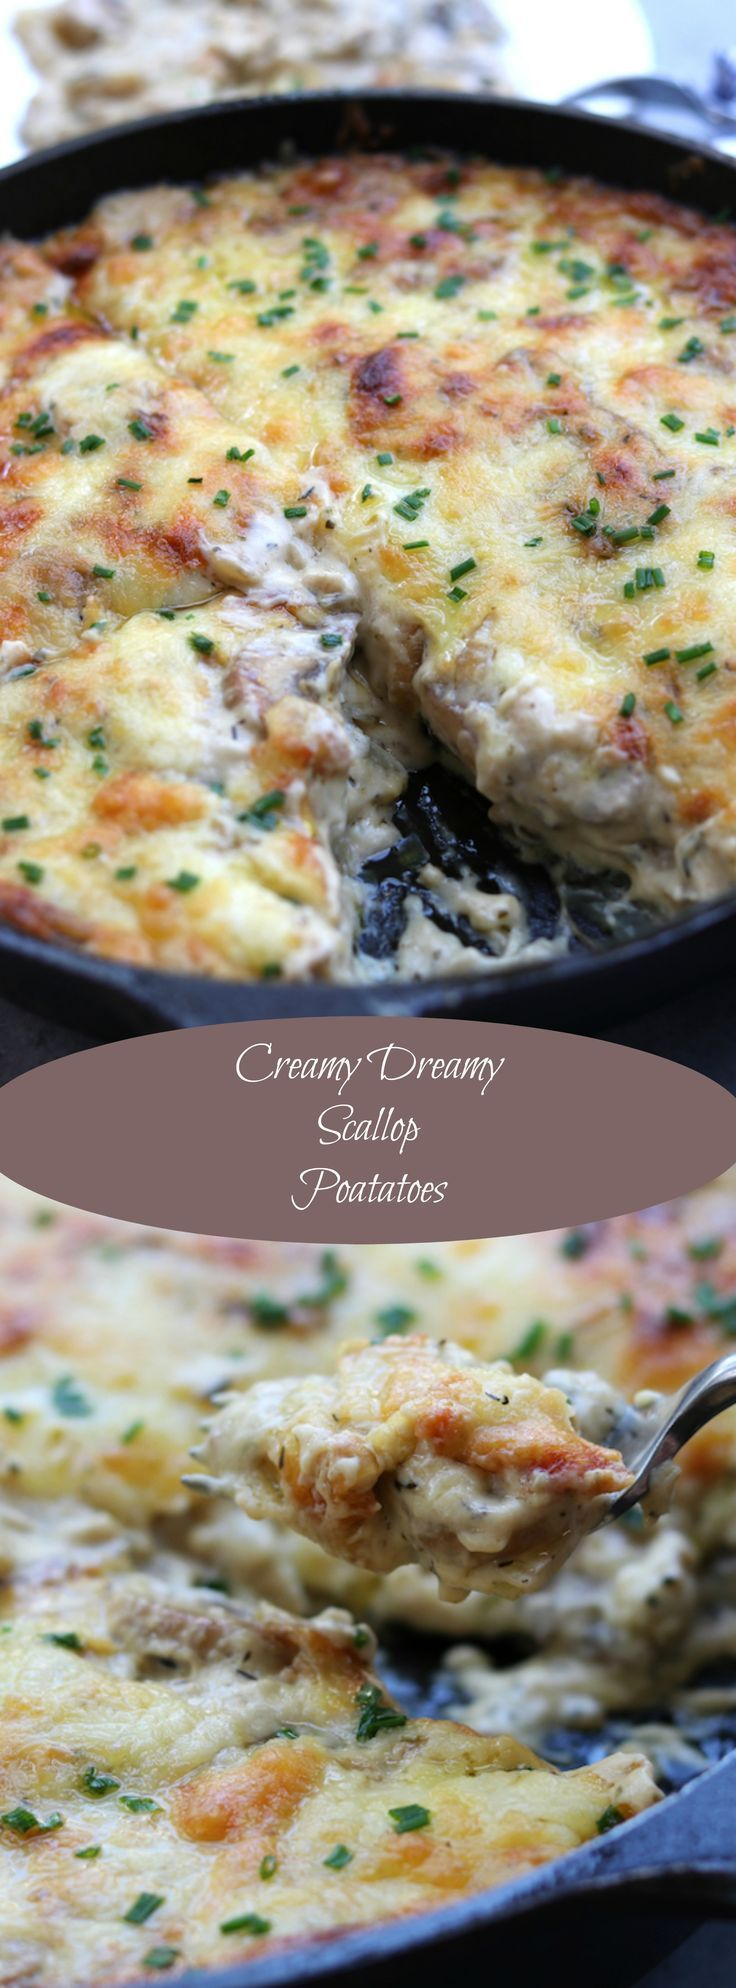 Made from scratch, Creamy Dreamy Scallop Potatoes is the ultimate Holiday side dish. Full of comfort and oozing with a cheesy herbed mushroom cream sauce, your taste buds with be delighted. #FallFest http://www.thefedupfoodie.com